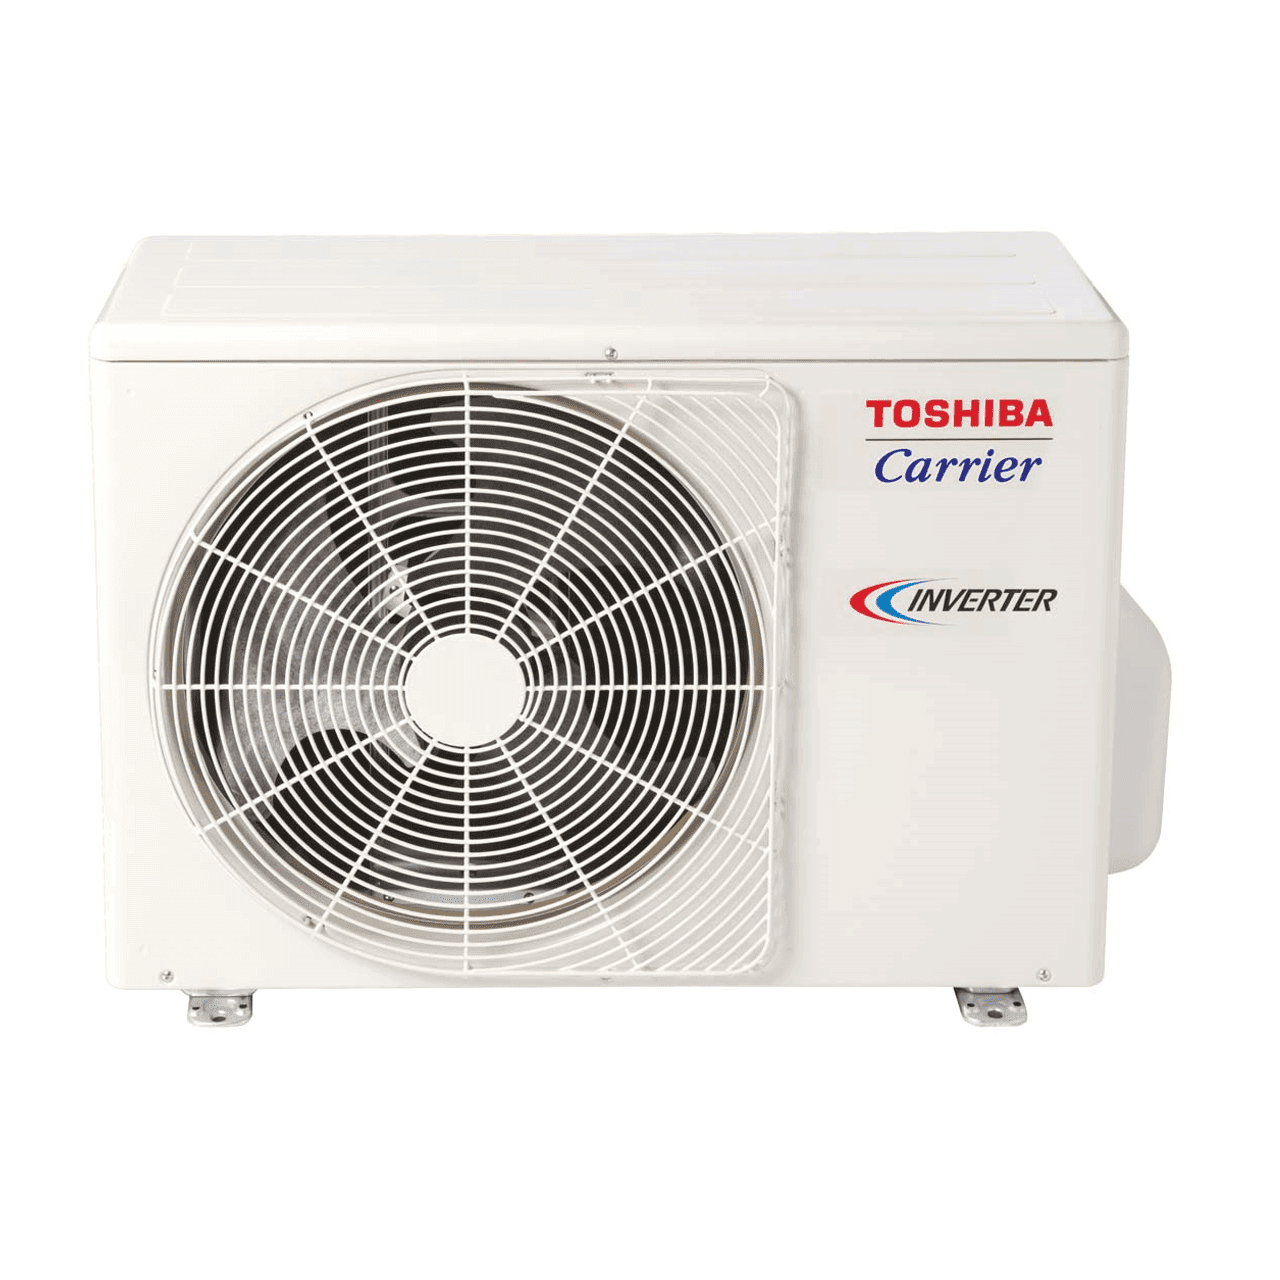 Toshiba Carrier Heat Pump with Basepan Heater Model: RASE2